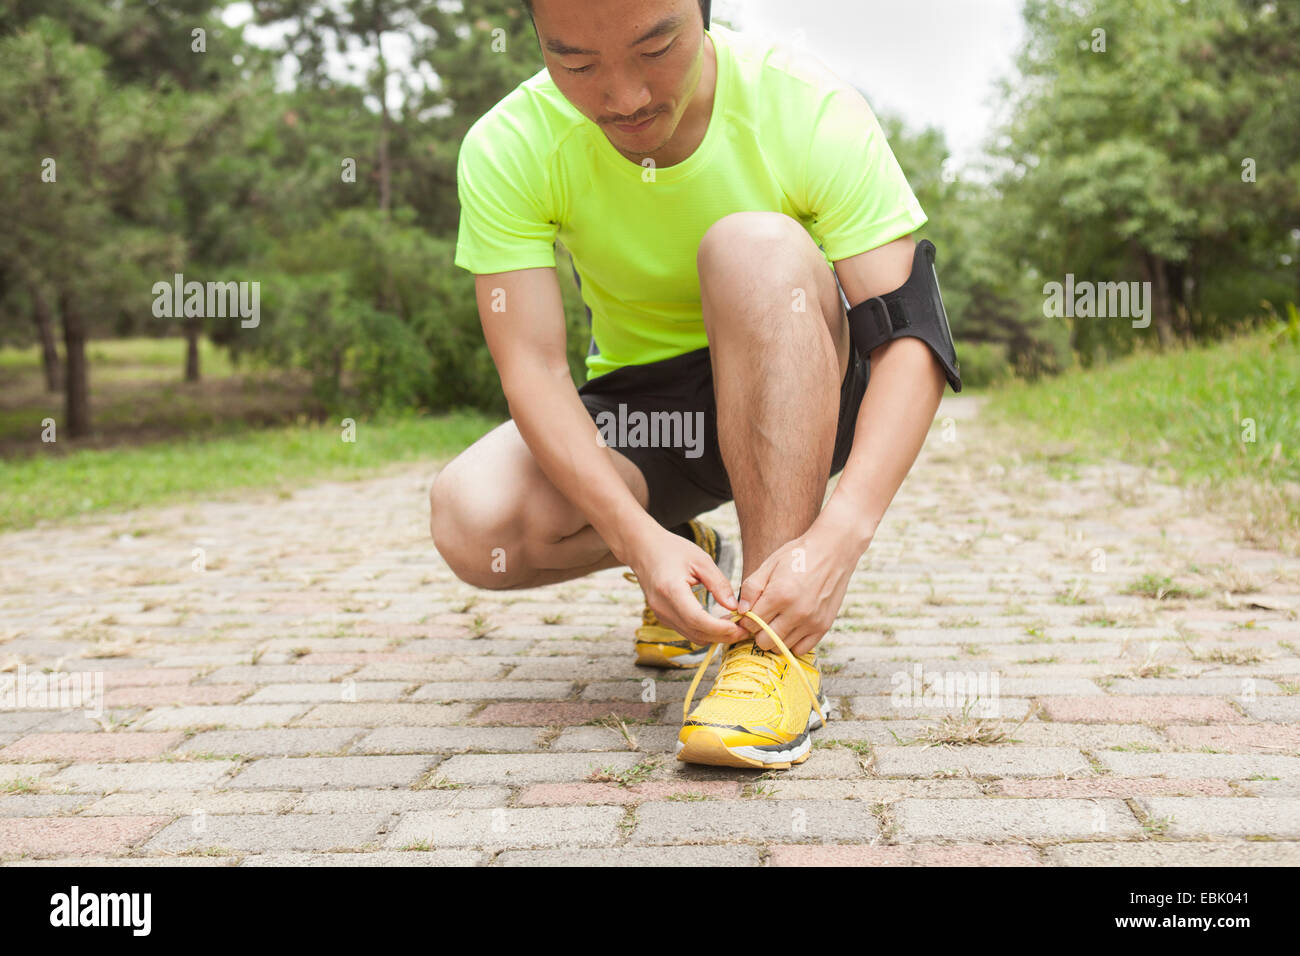 Young male runner tying trainer laces in park - Stock Image